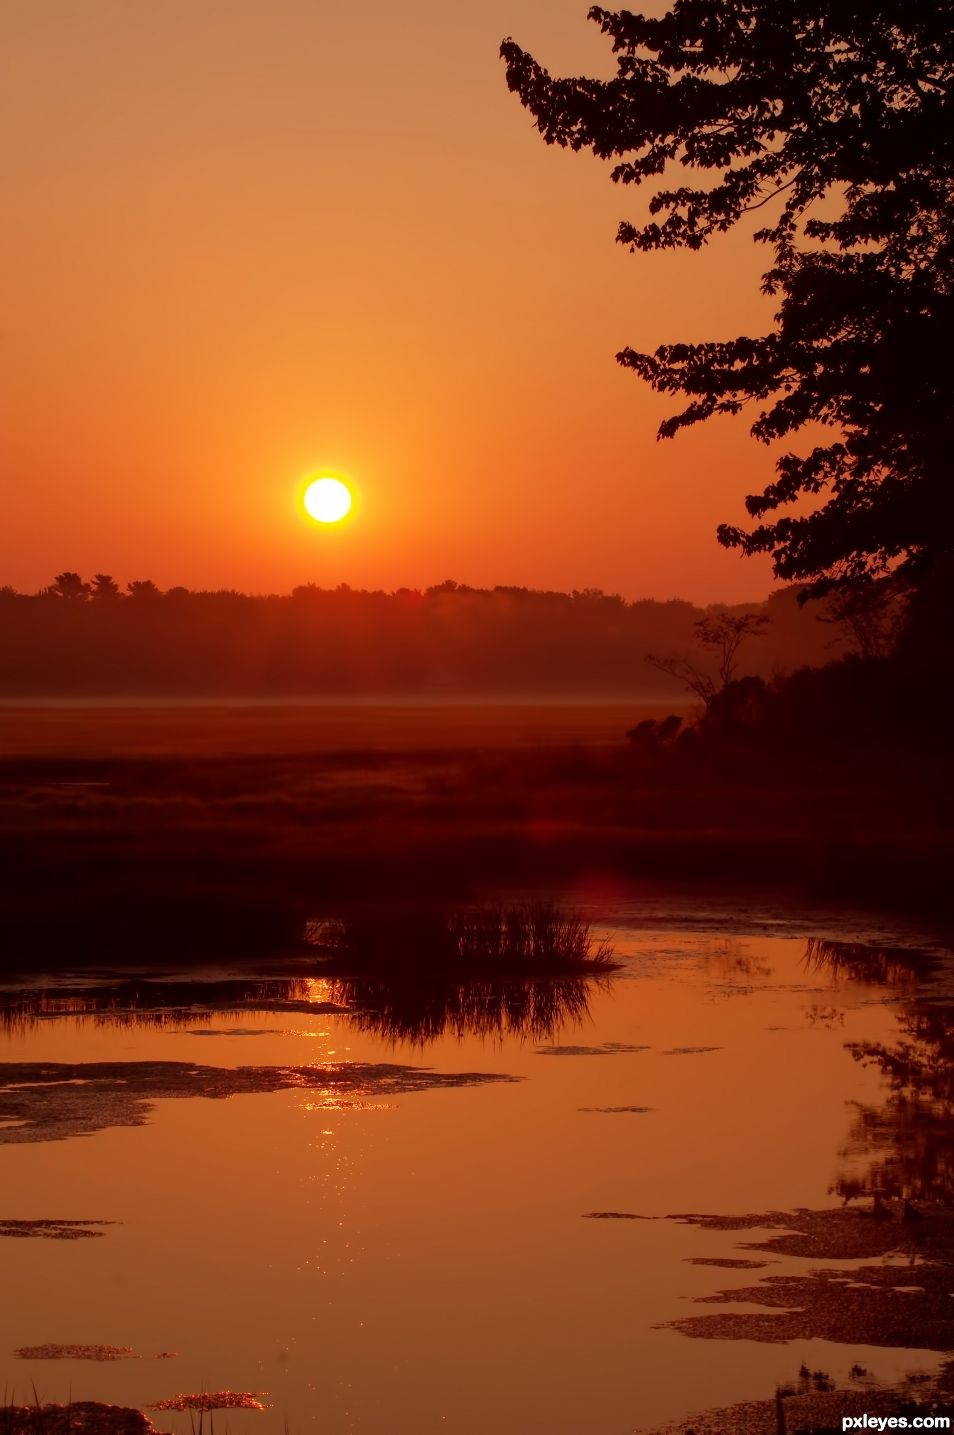 Sunrise Over a Salt Marsh